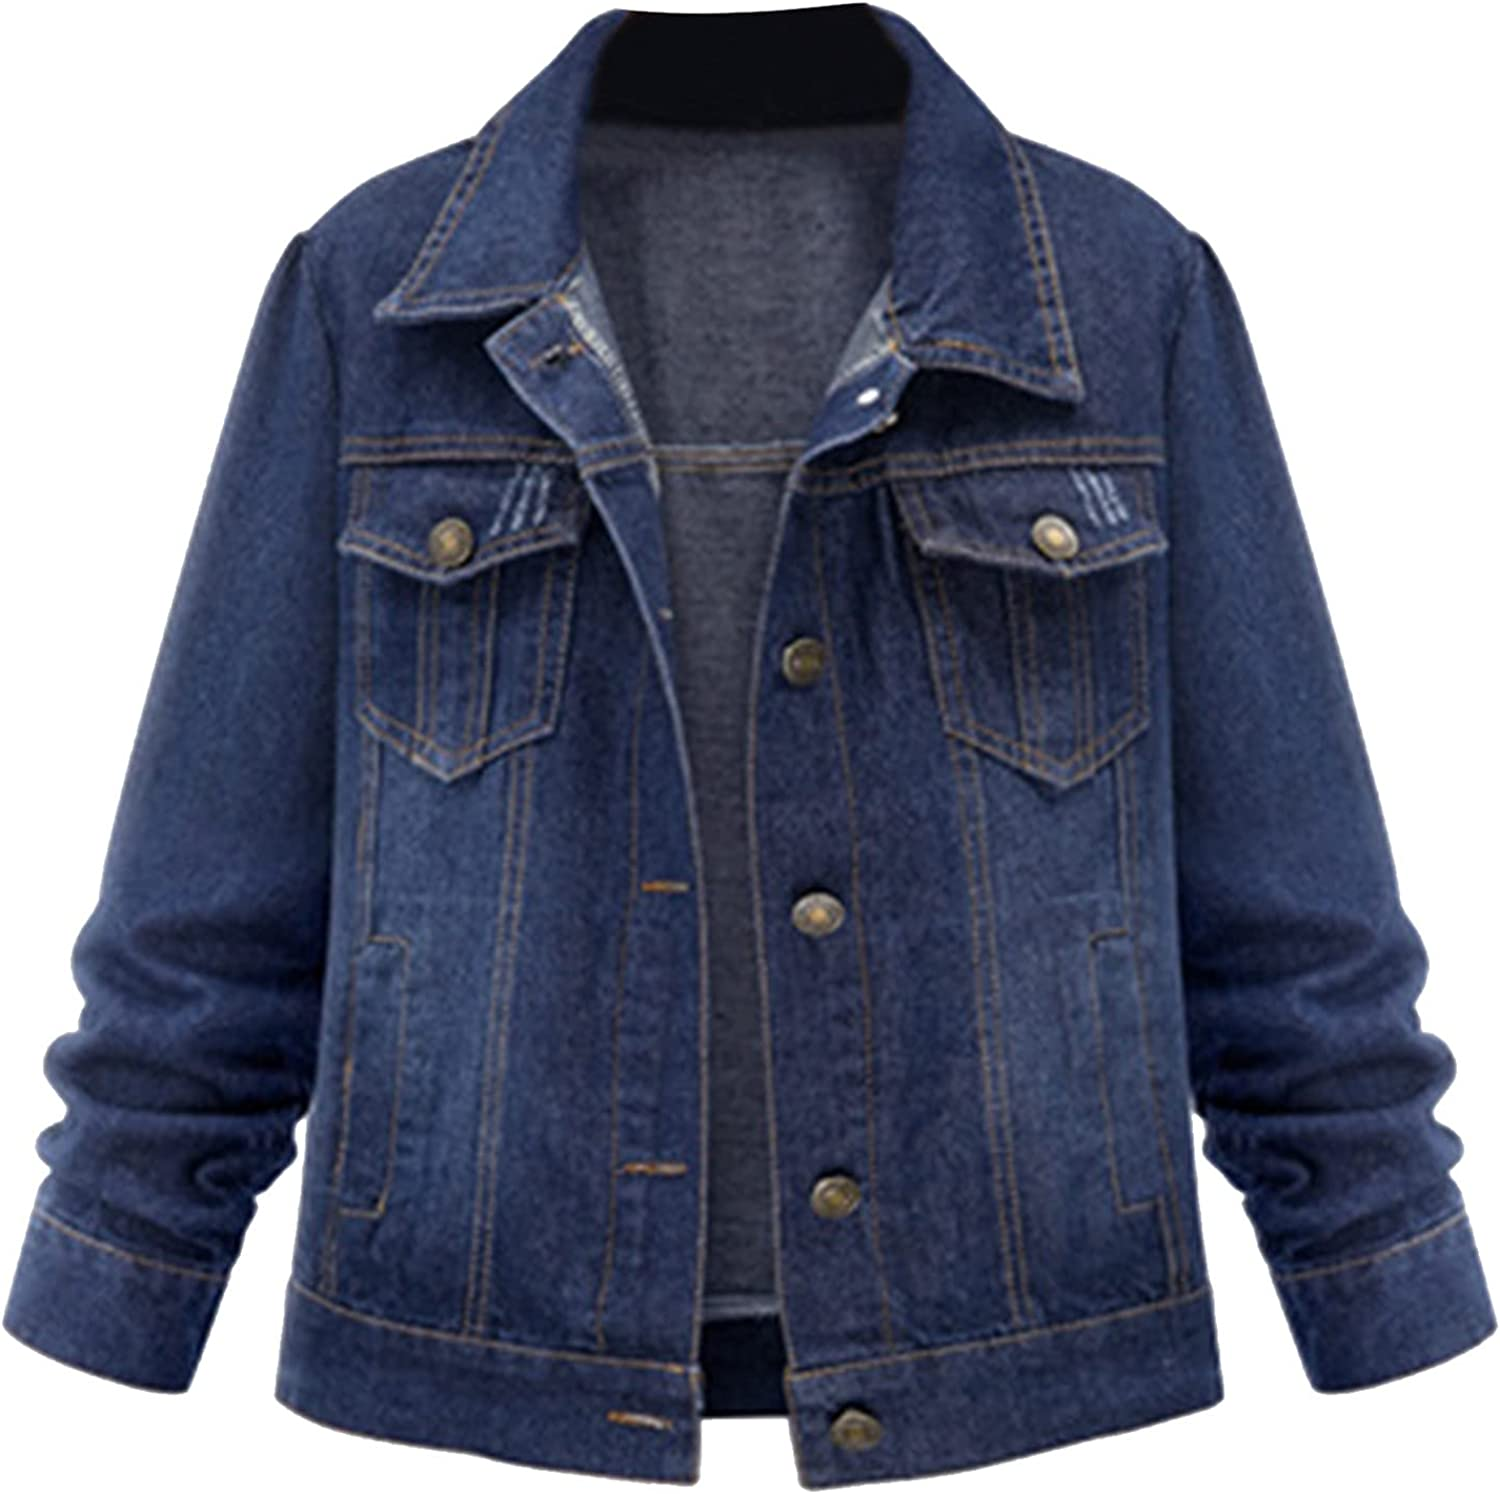 Women's Genesis Denim Jackets Ladies Cowgirl Ladies Blouse Casual Long Sleeved Front Zip Coat Party with Pockets